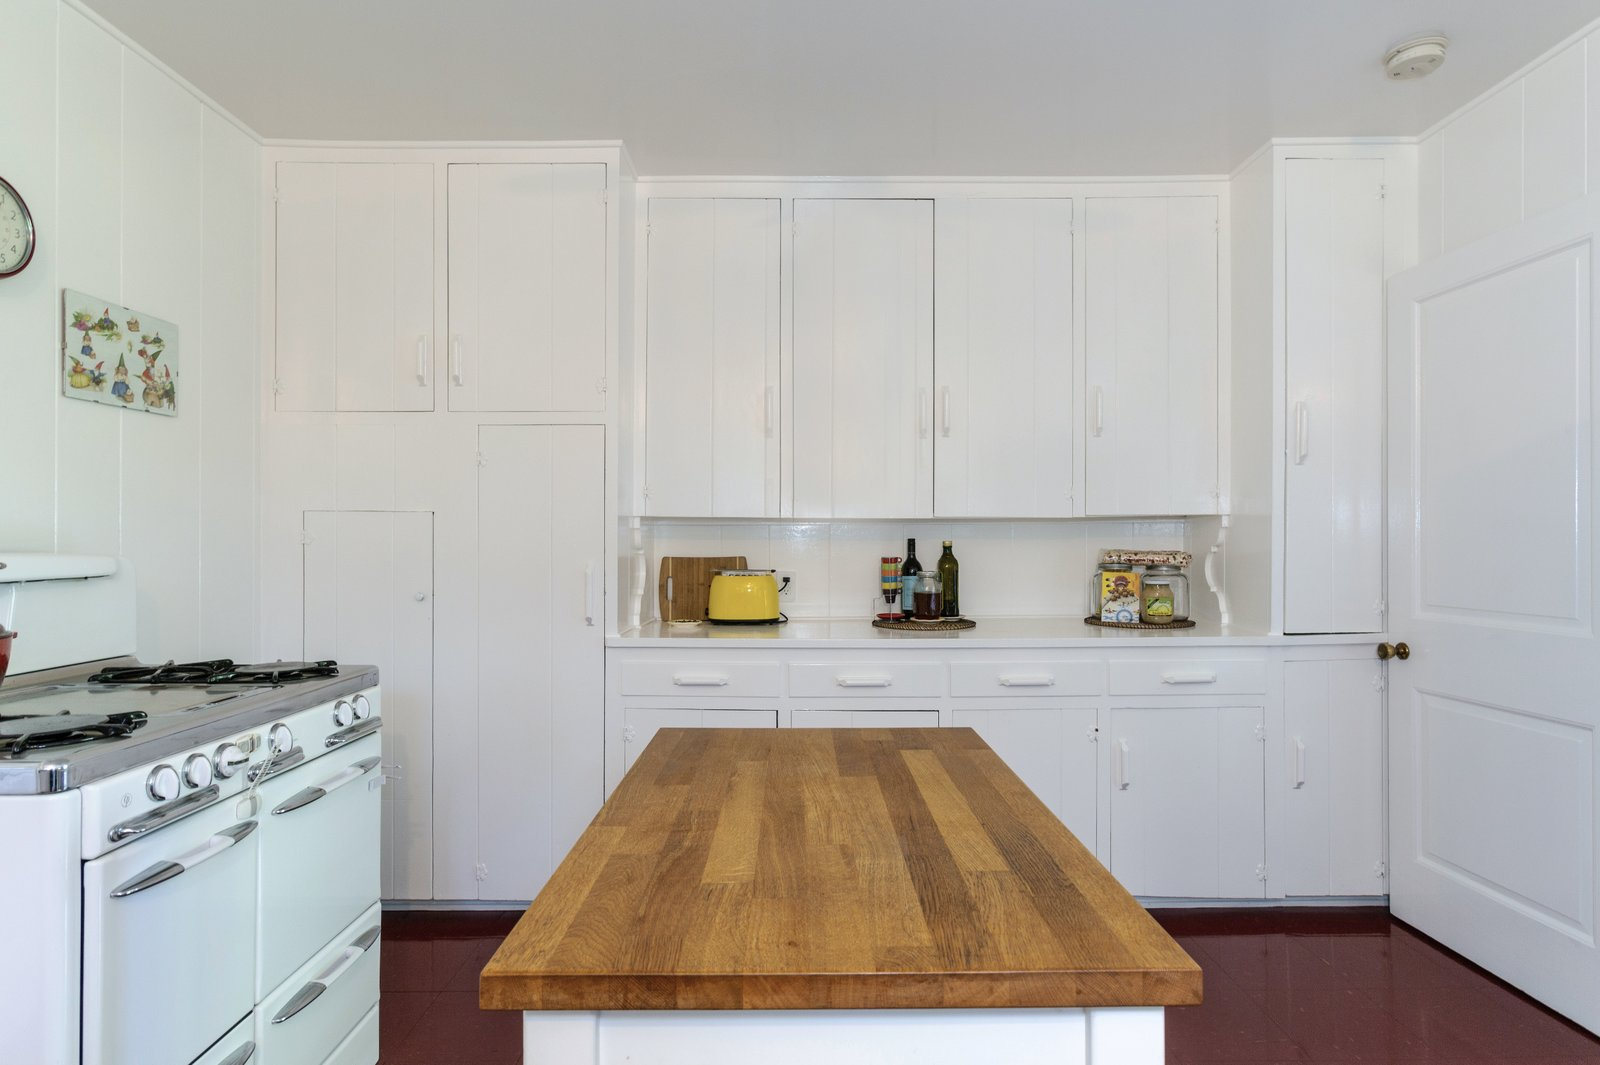 Another view of the kitchen shows cabinetry that lines the rear wall.  Photo 6 of 22 in A Lush Los Angeles Compound With a Shingle-Clad Cottage and Lime-Green Home Seeks $2M